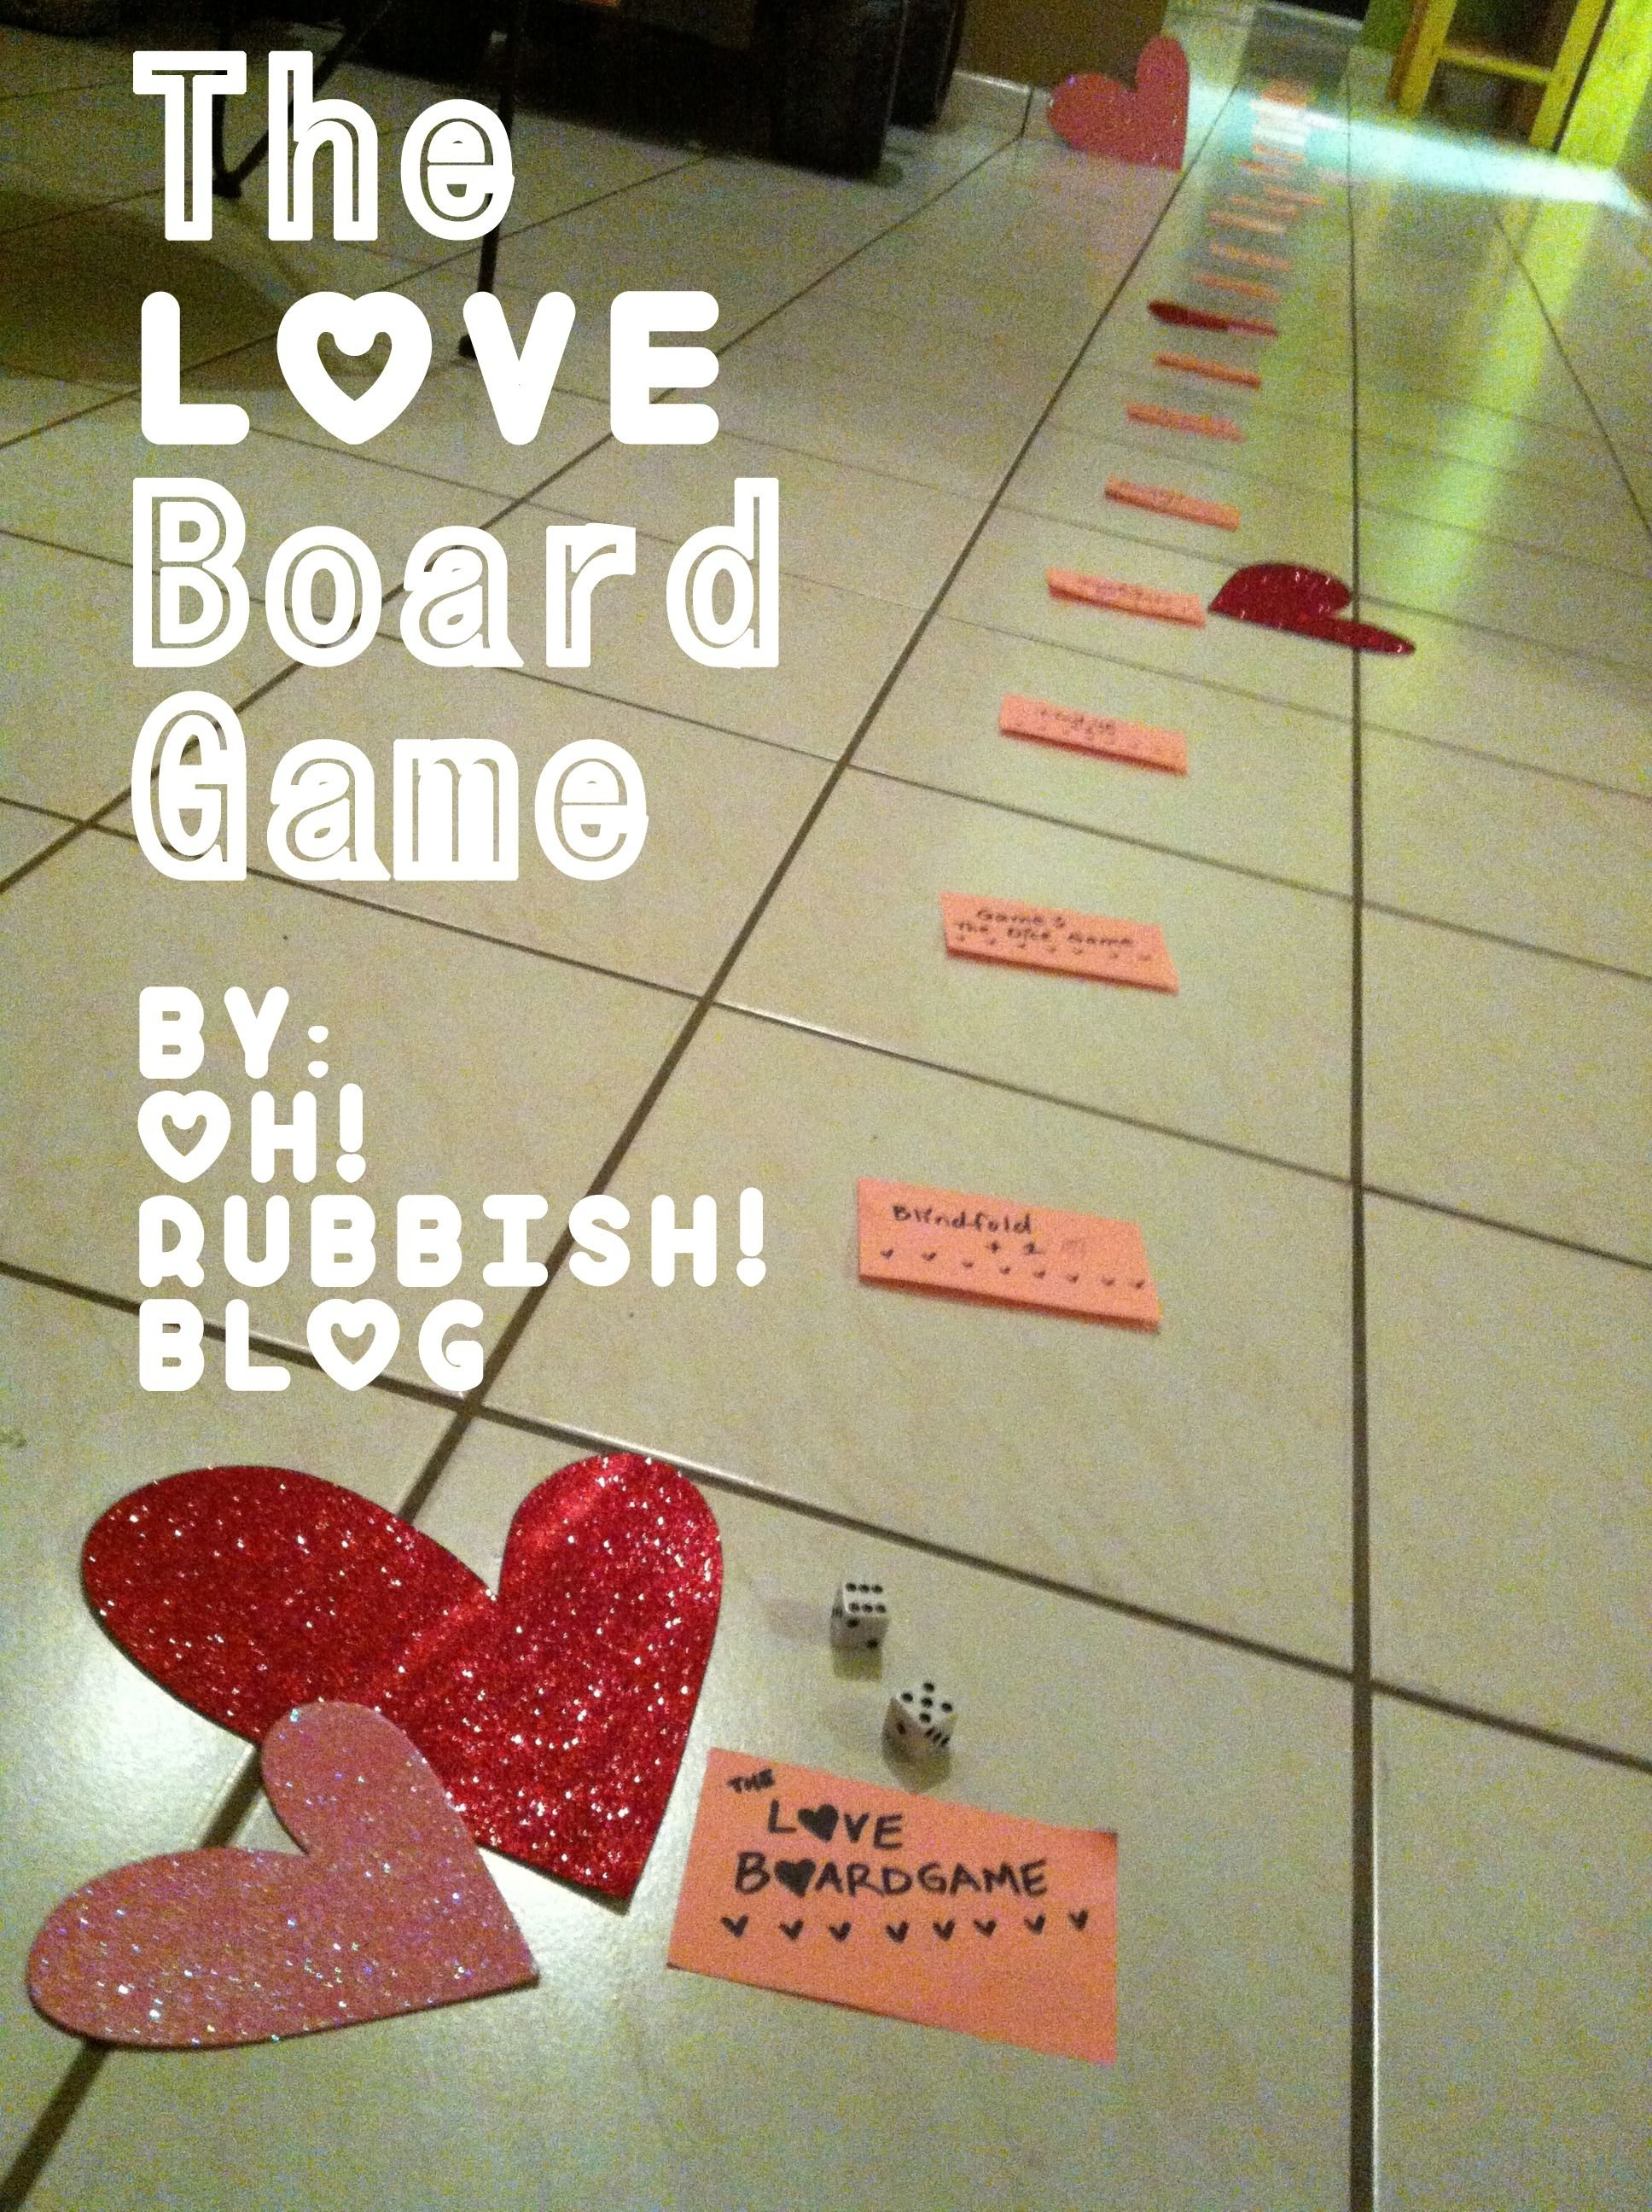 10 Nice Valentines Day Ideas For New Couples the love board game valentine game for couples valentine day 10